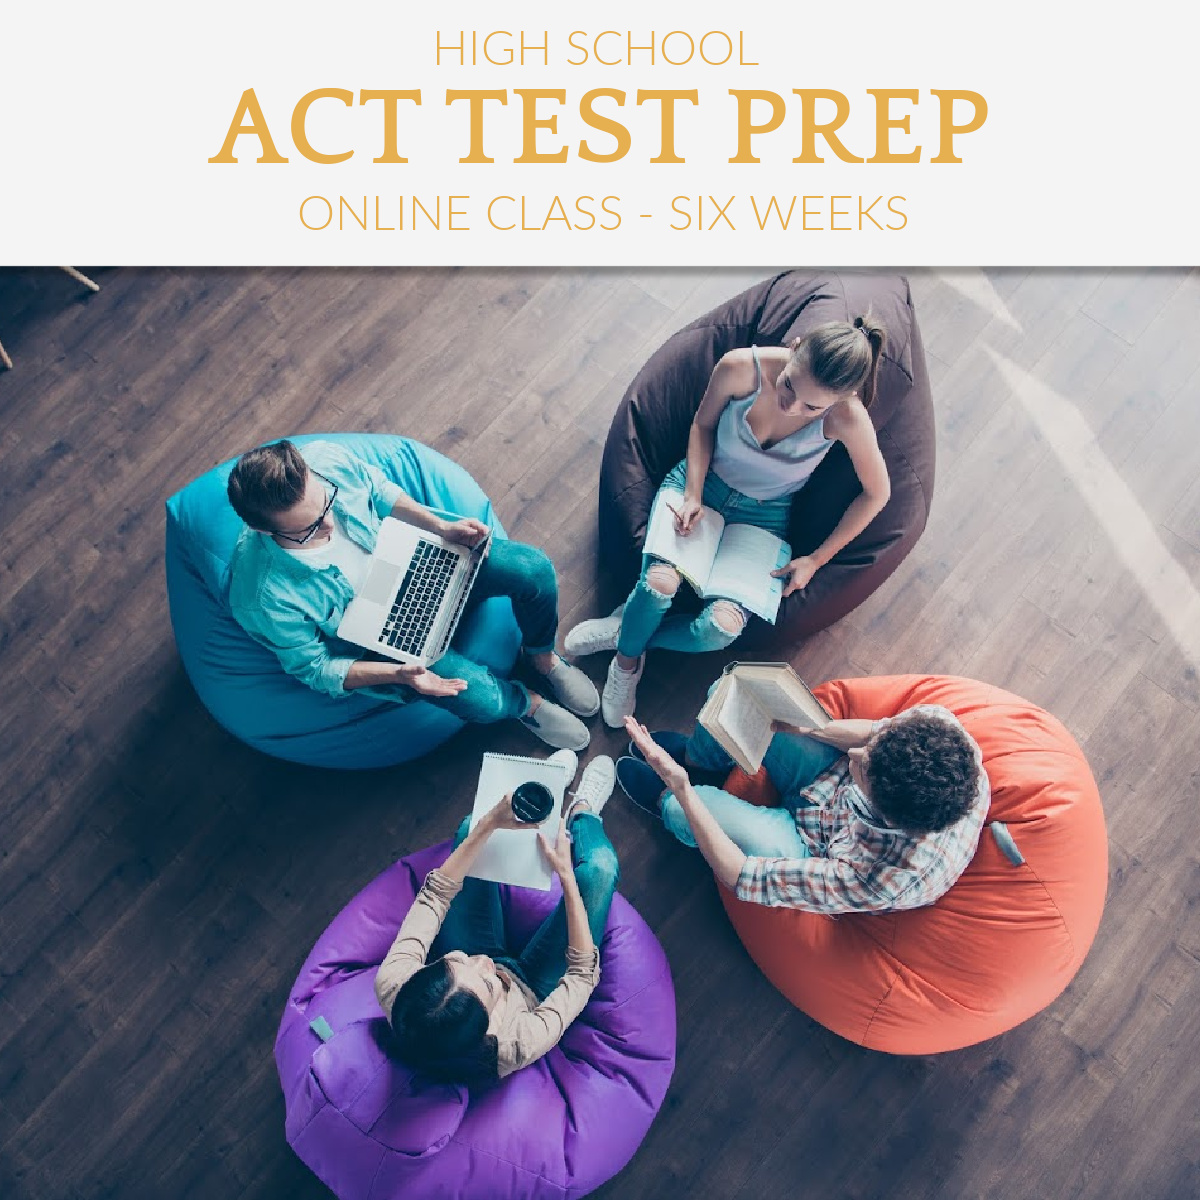 Act Test Prep Class Online Archives True North